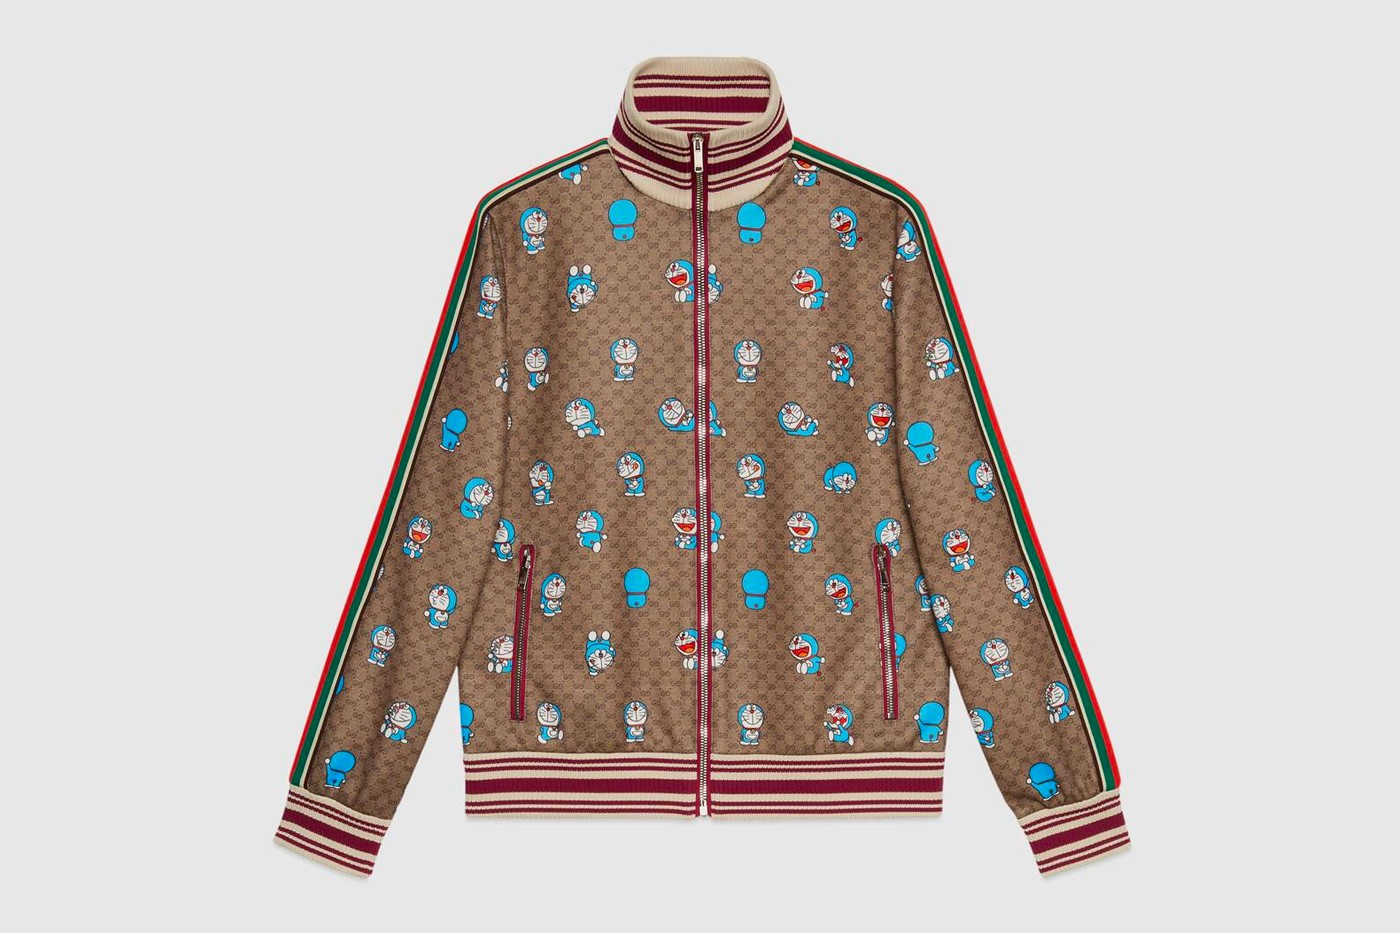 Gucci and Doraemon all over.